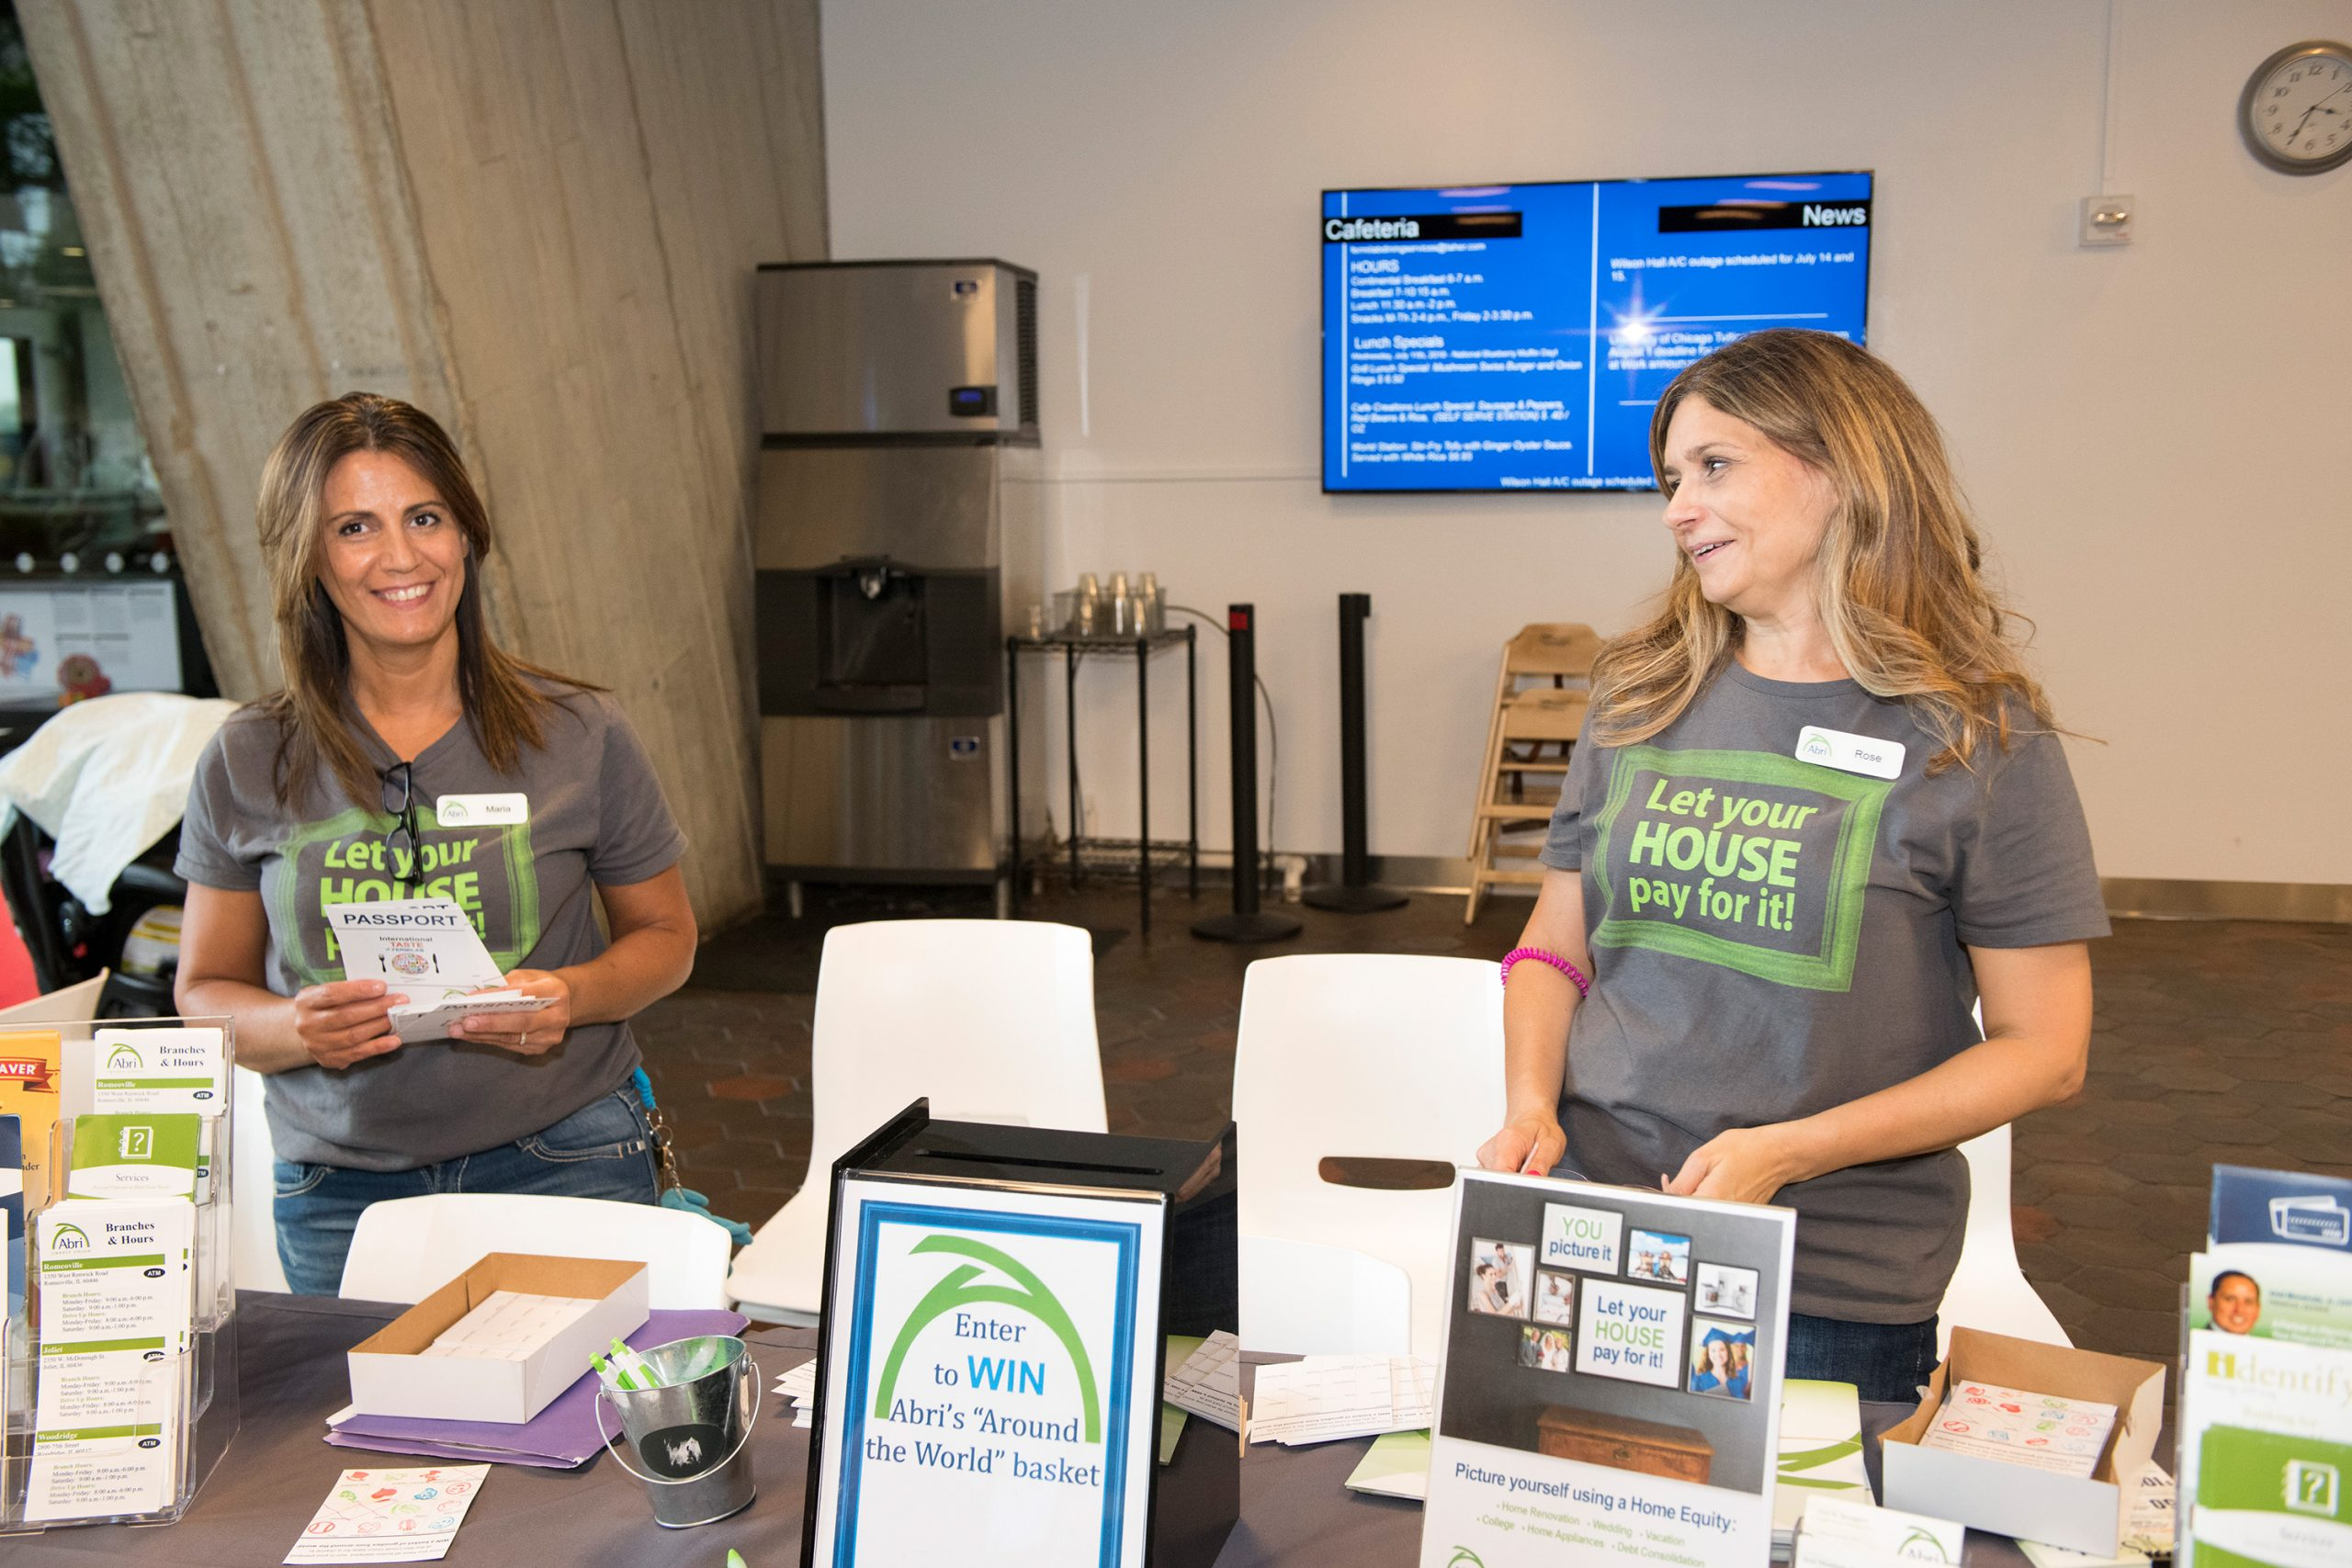 """Abri Credit Union partnered in the International Taste of Fermilab. They provided """"passports"""" for the event. Participants had their passports stamped at each table and returned them to Abri to enter the raffle. Photo: Reidar Hahn"""